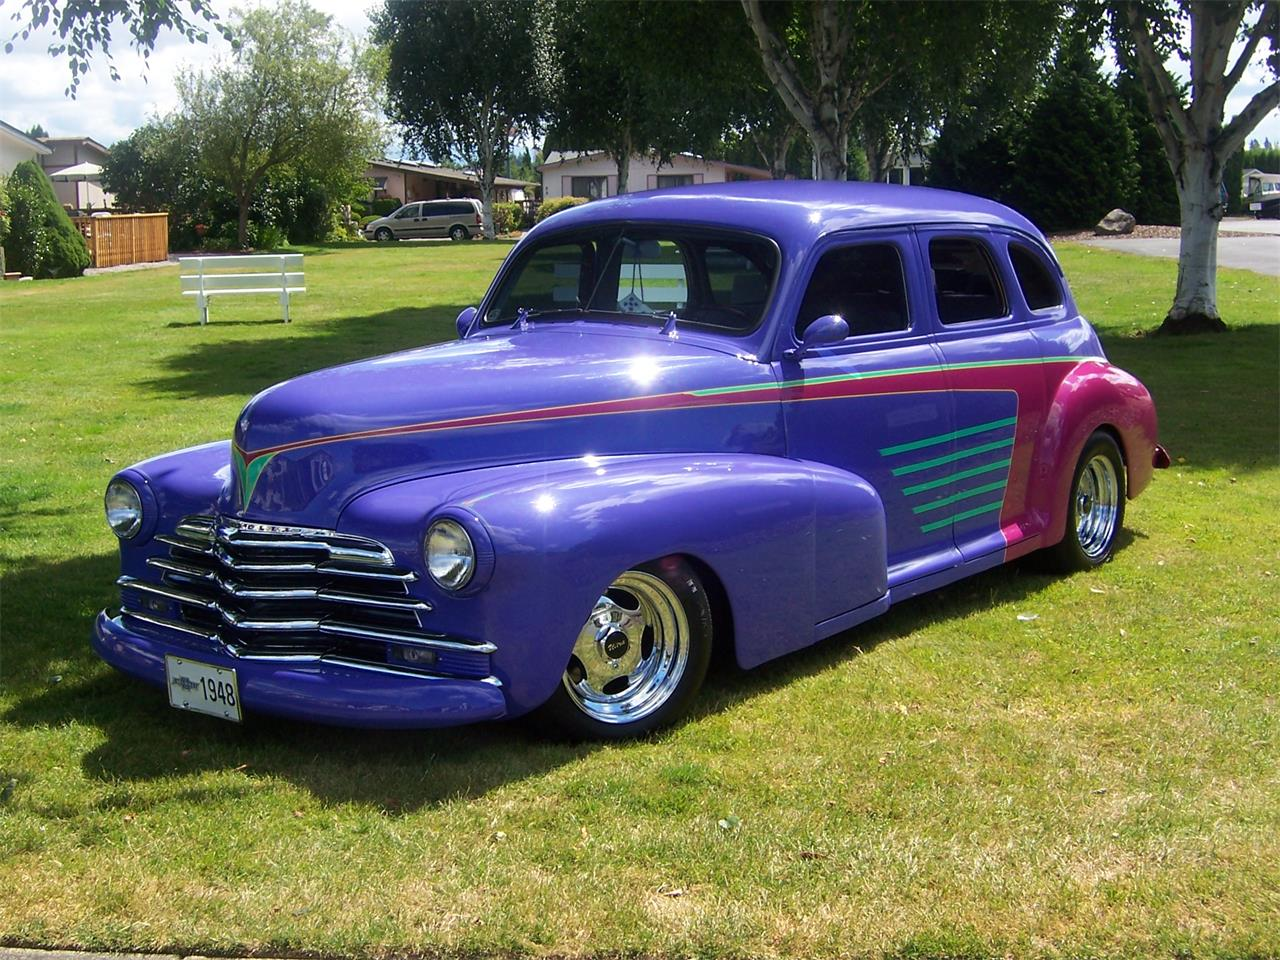 Large Picture of Classic 1948 Chevrolet Fleetmaster located in Vancouver Washington - $18,500.00 Offered by a Private Seller - LNQ9